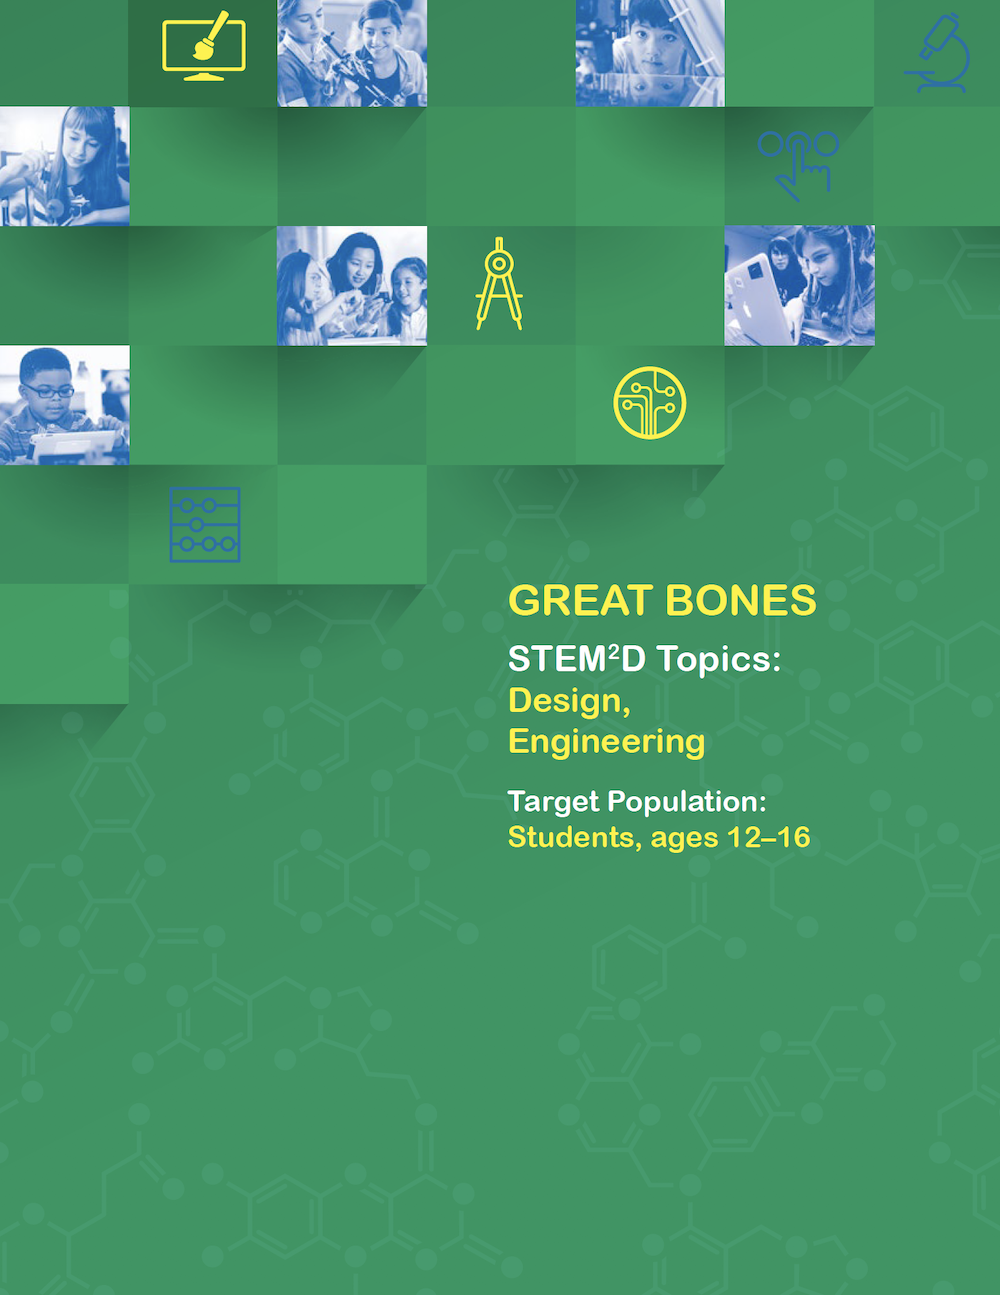 Great Bones cover-large.png